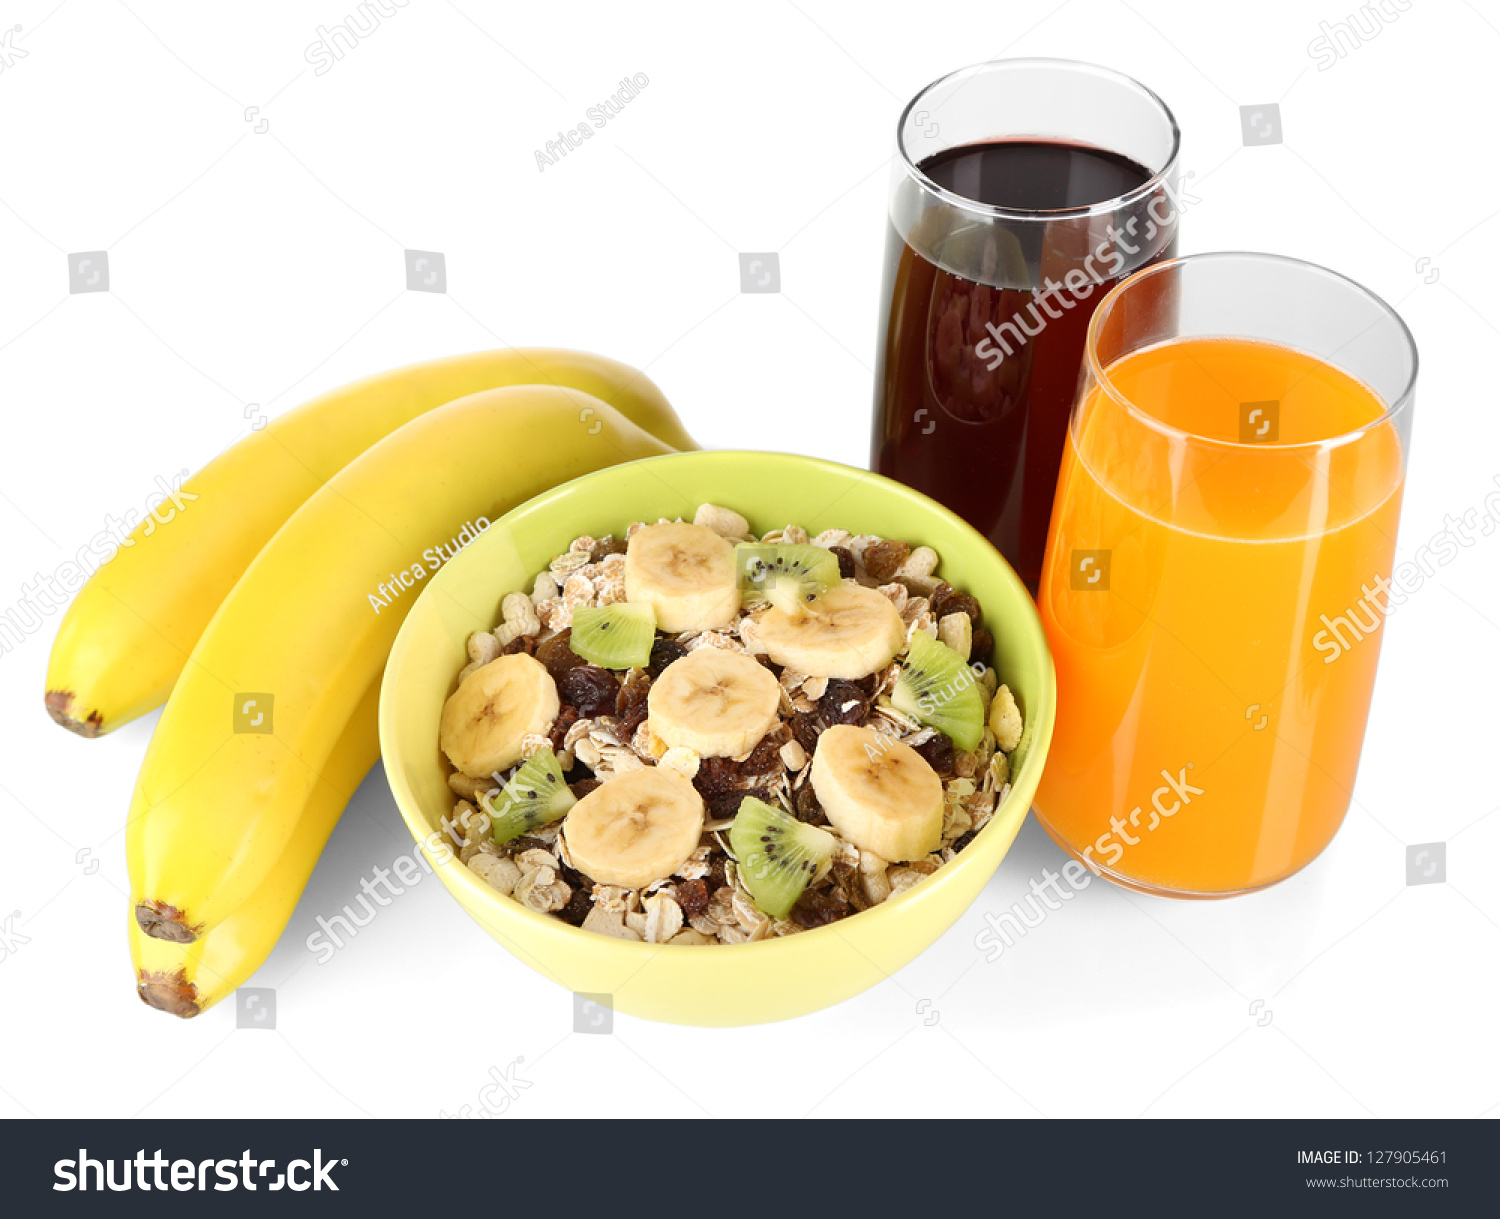 is fruit and fibre cereal healthy edible fruits